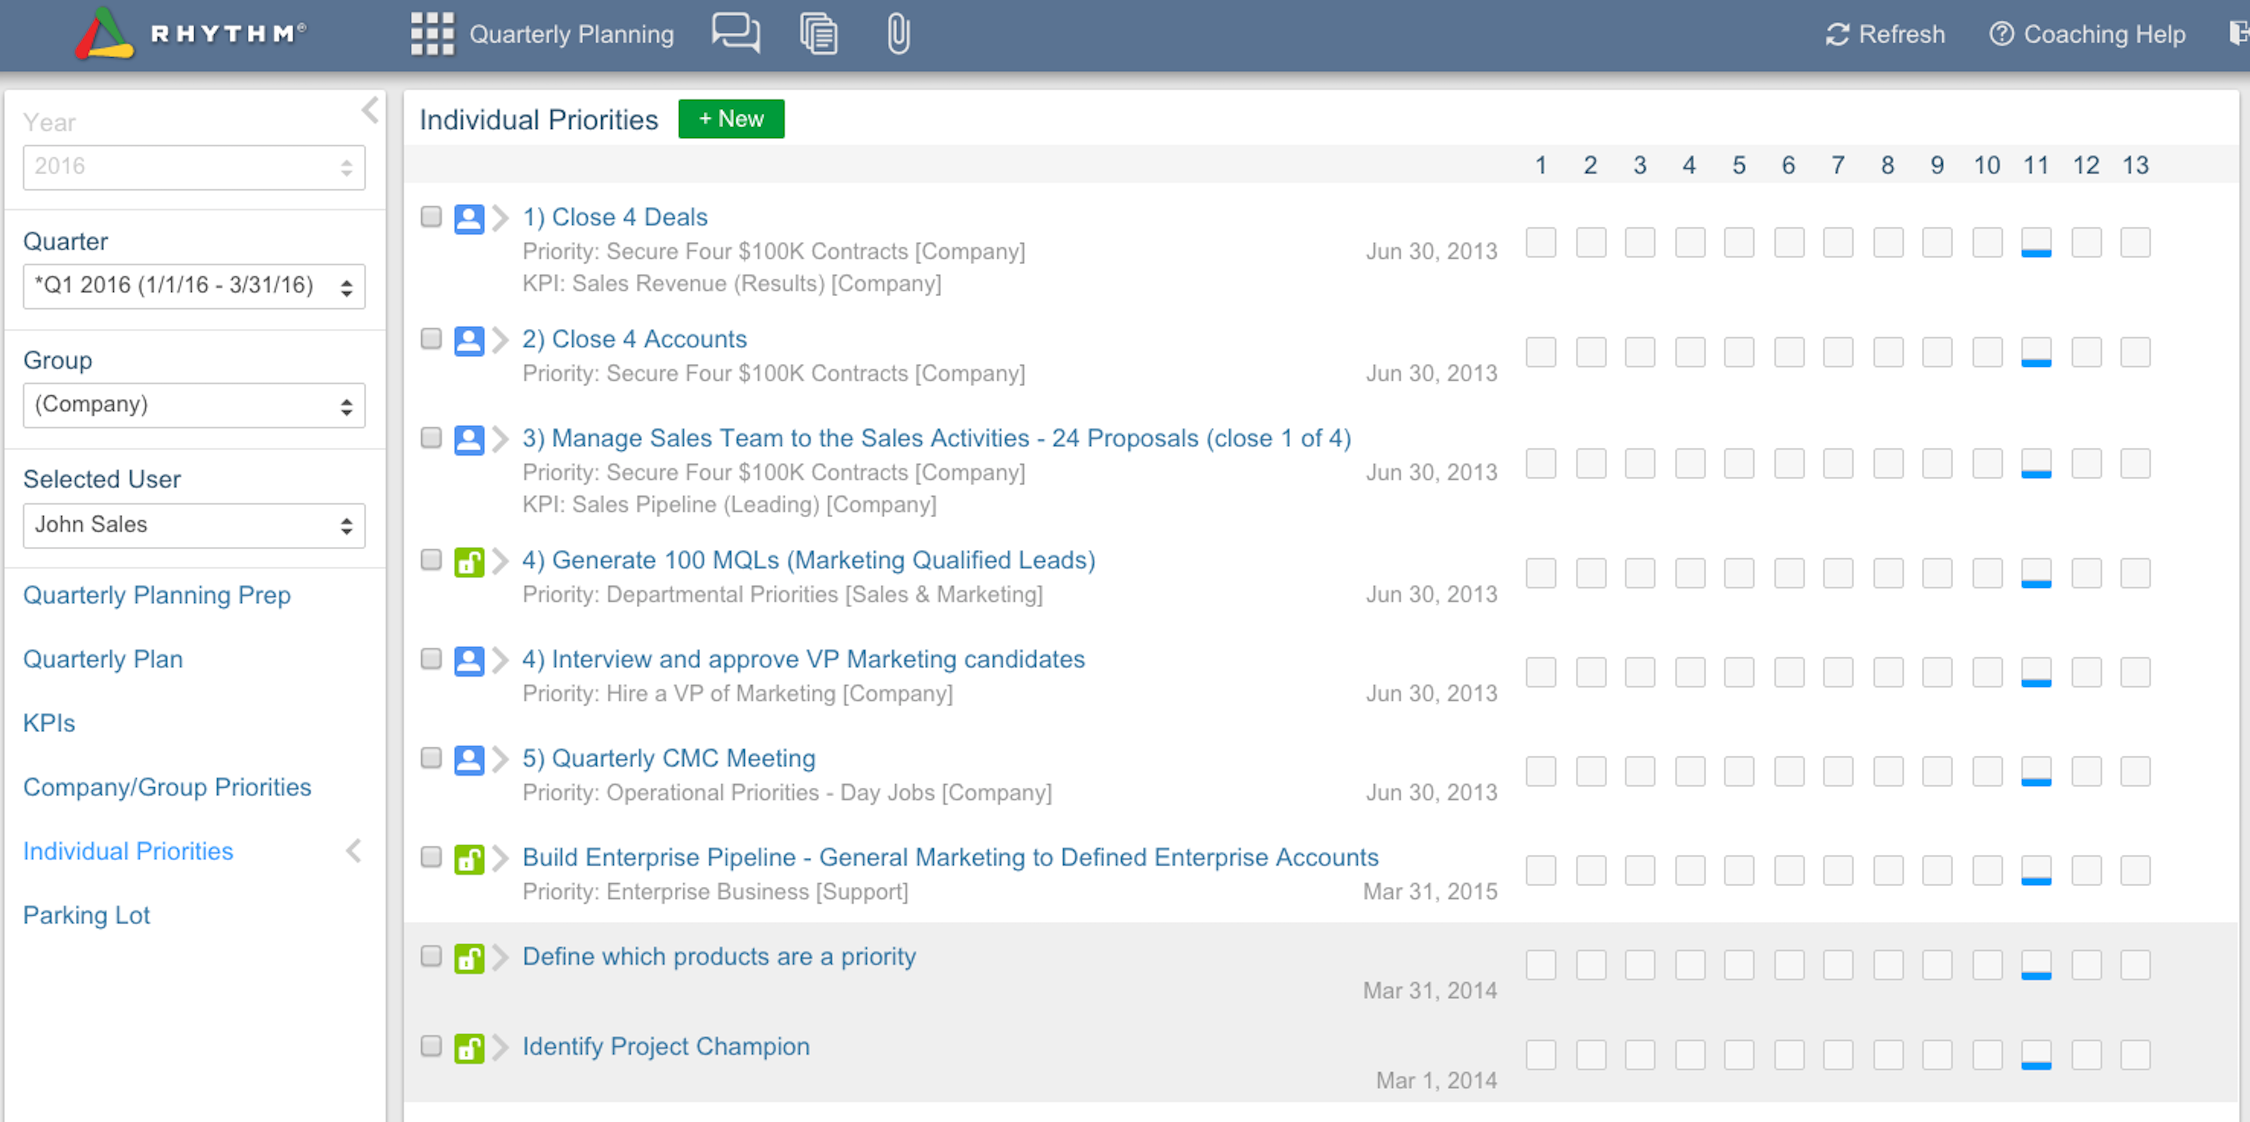 Rhythm software: Quarterly Planning Individual Priorities dashboard.png